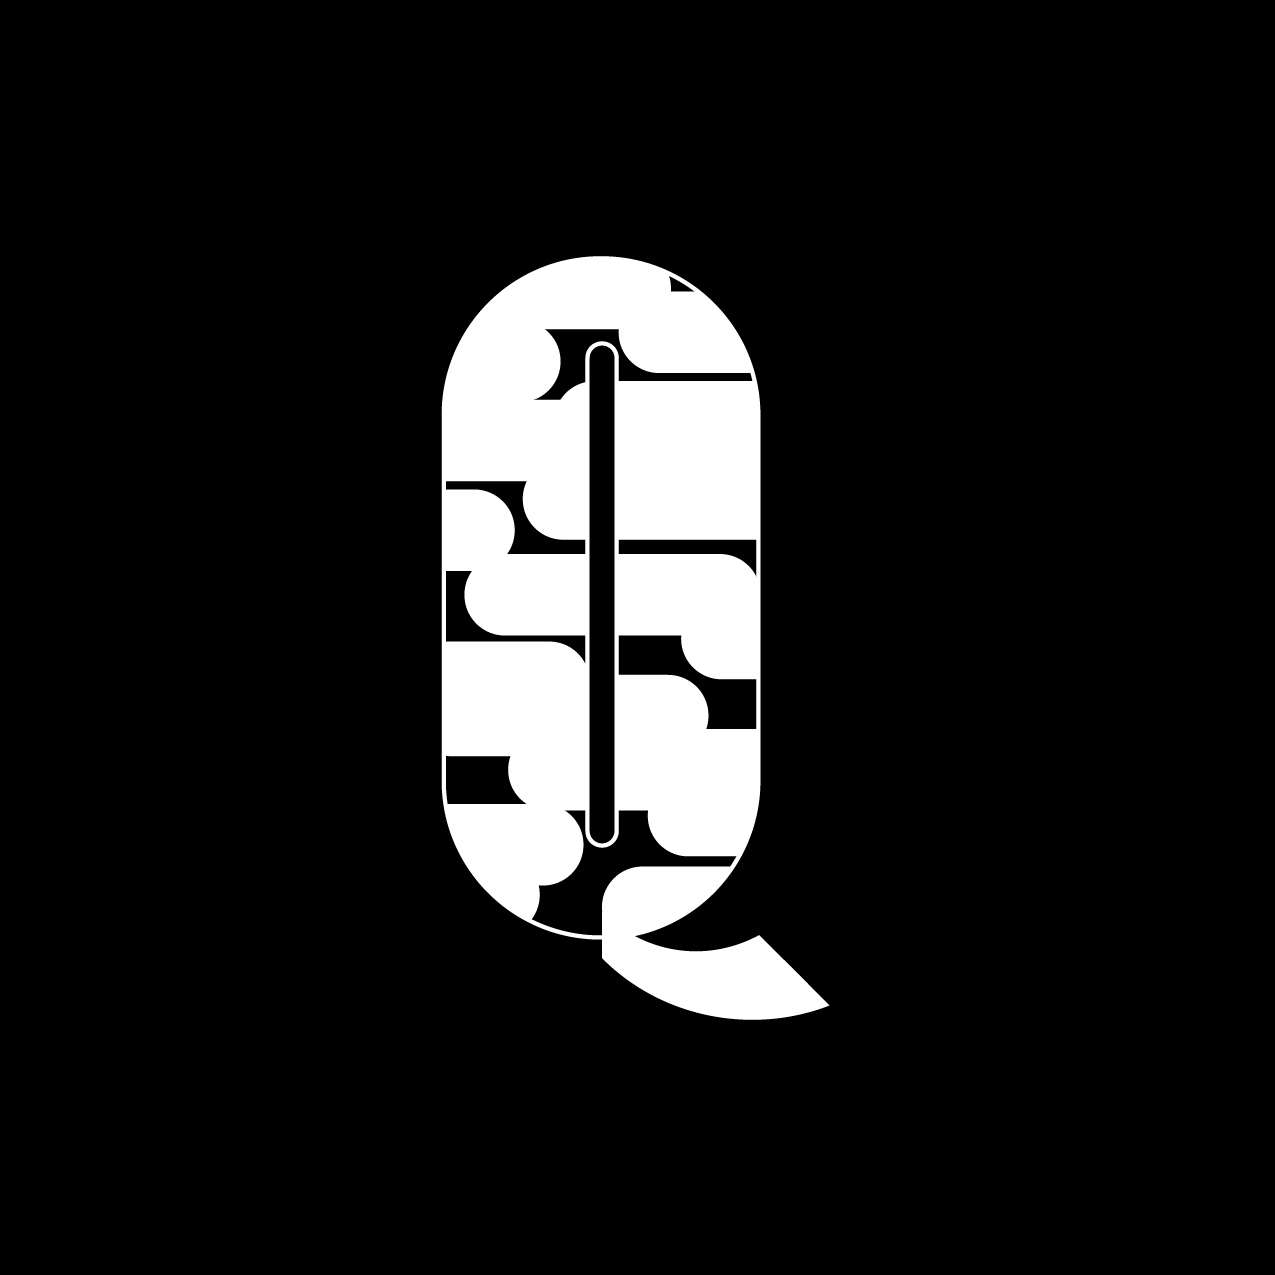 Letter Q8 Design by Furia